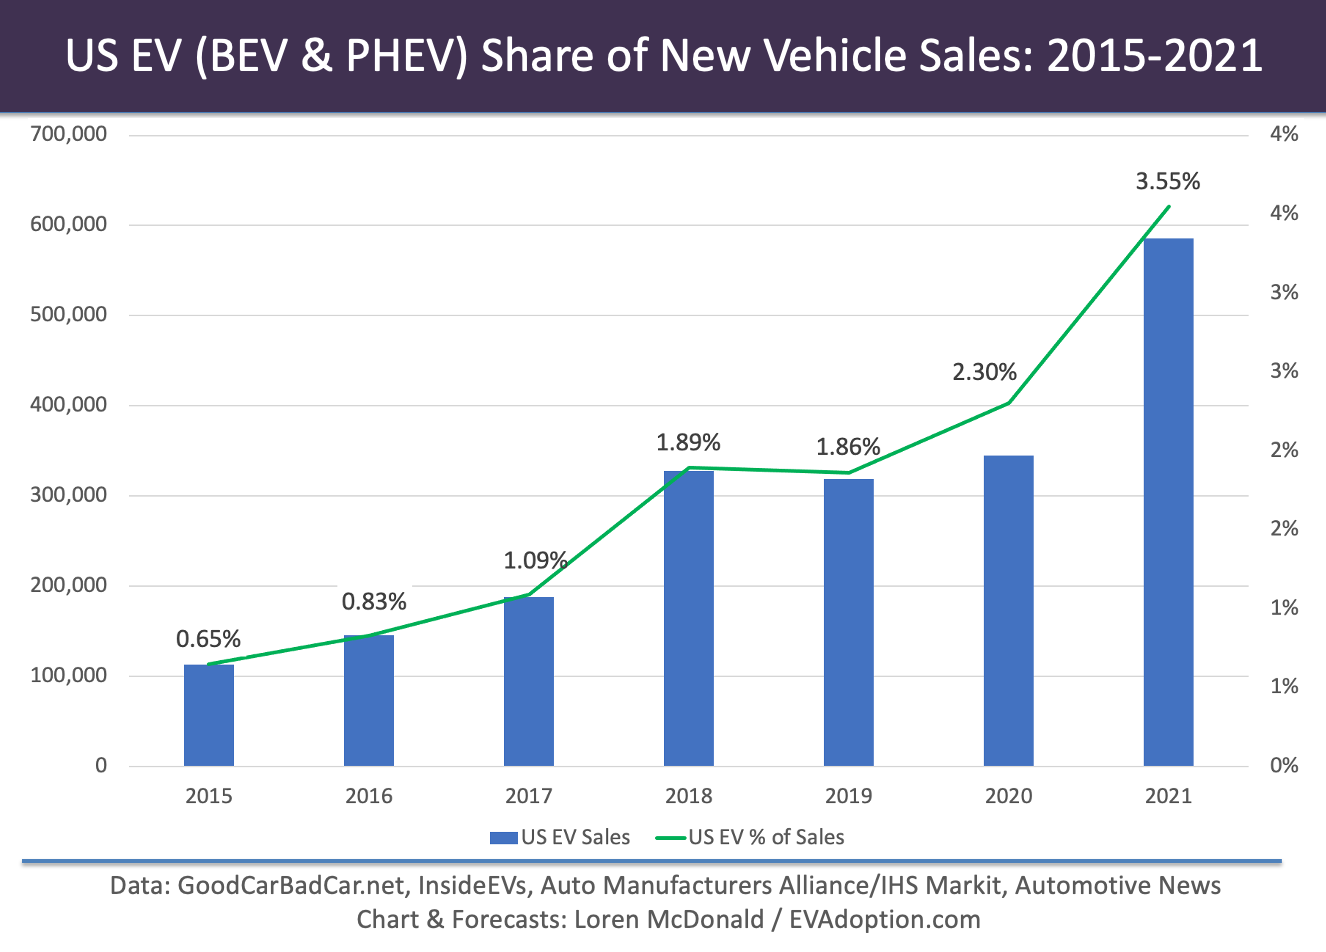 US EV-BEV & PHEV-Share of New Vehicle Sales 2015-2021